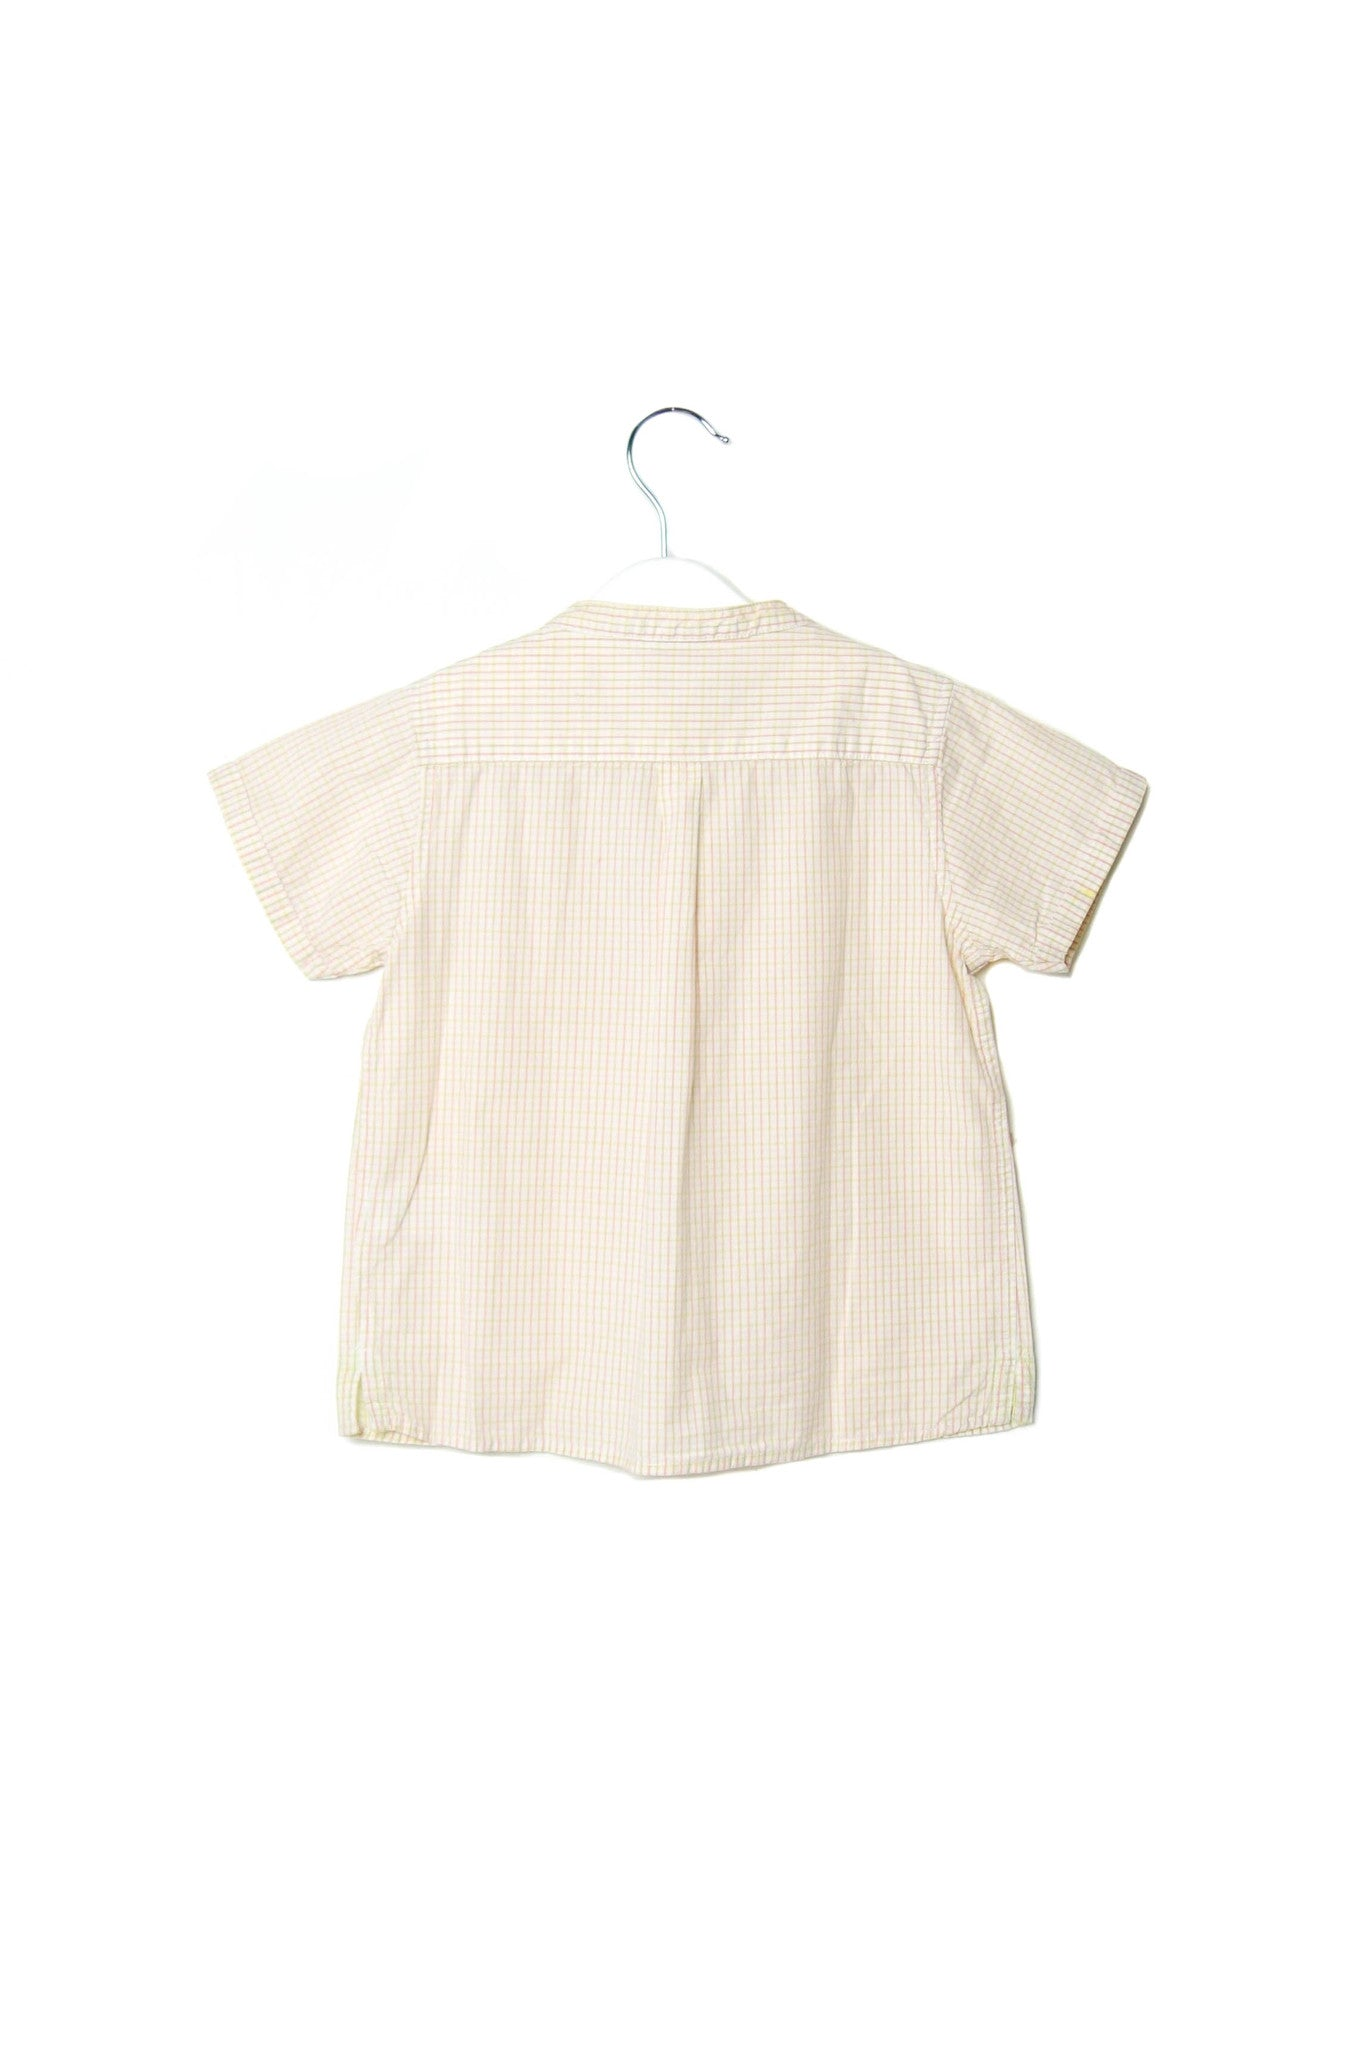 10002163 Petit Bateau Kids~Shirt 3T at Retykle